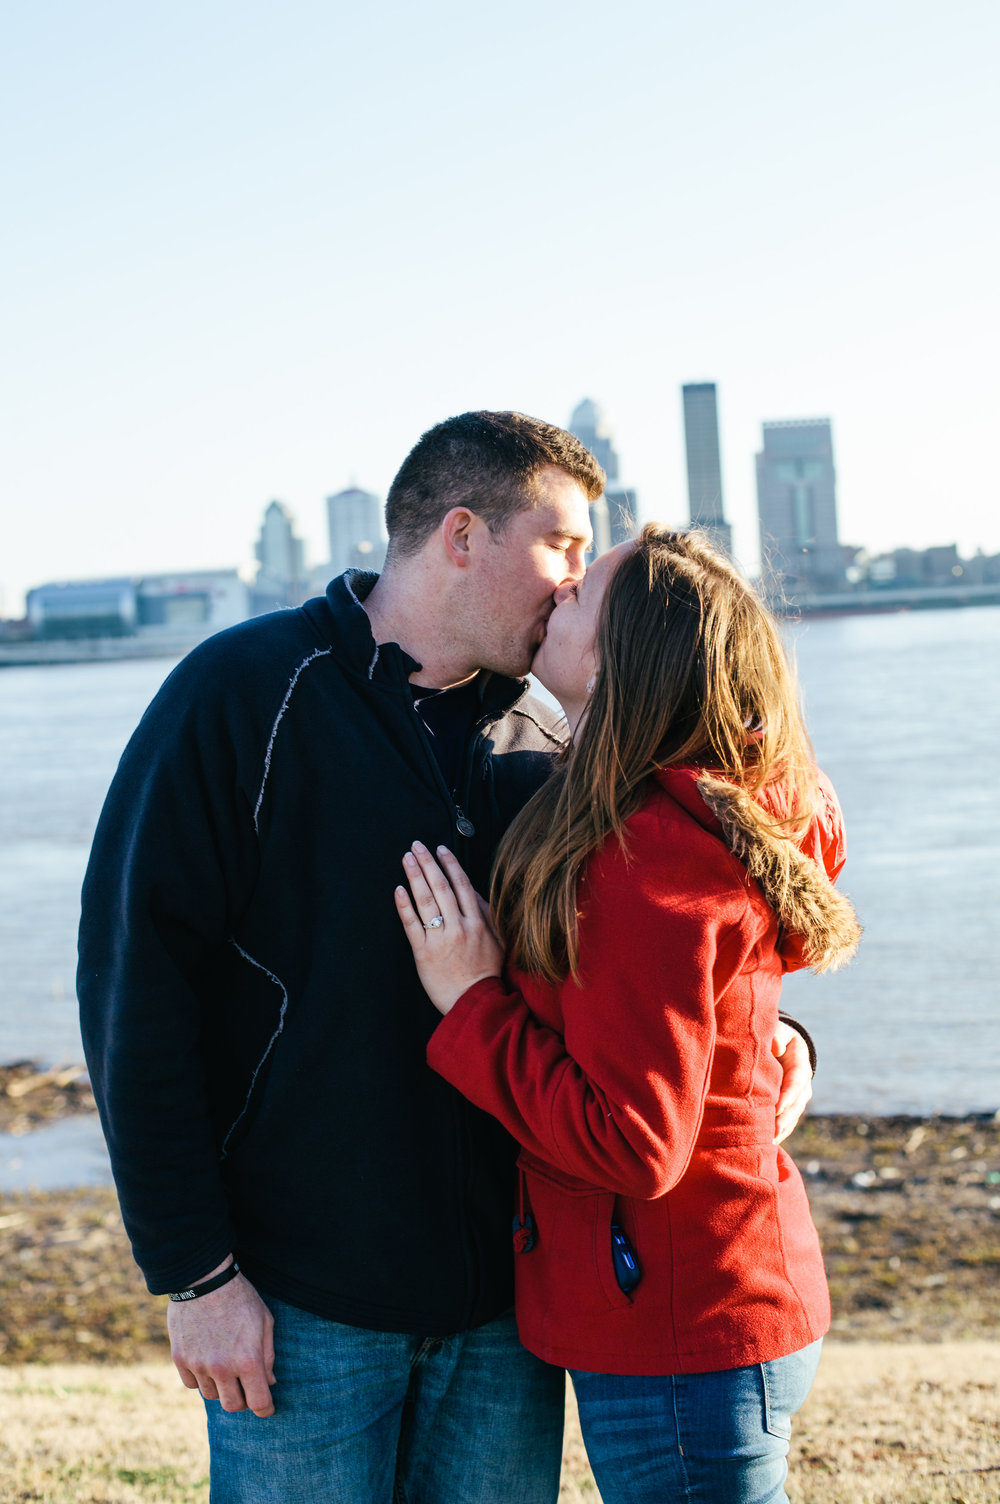 louisvilleproposal-30.JPG